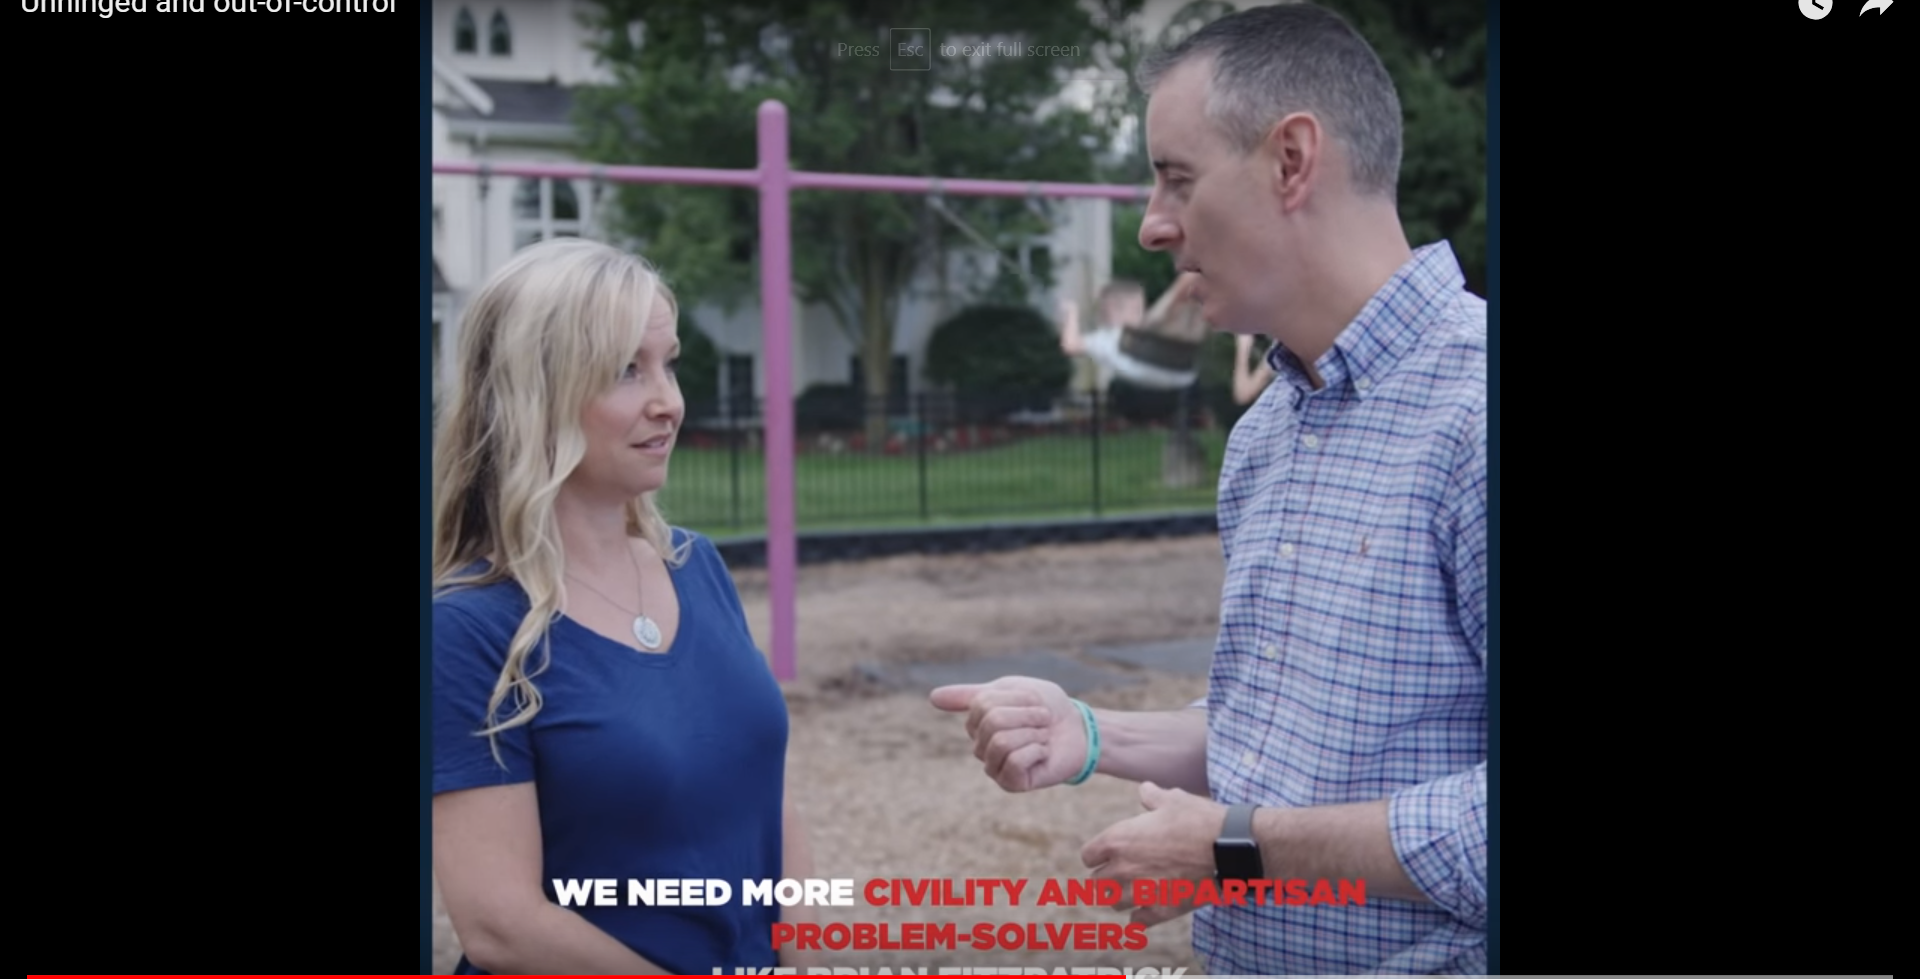 In this campaign ad, Republican Congressman Brian Fitzpatrick is seen with his sleeves rolled up.